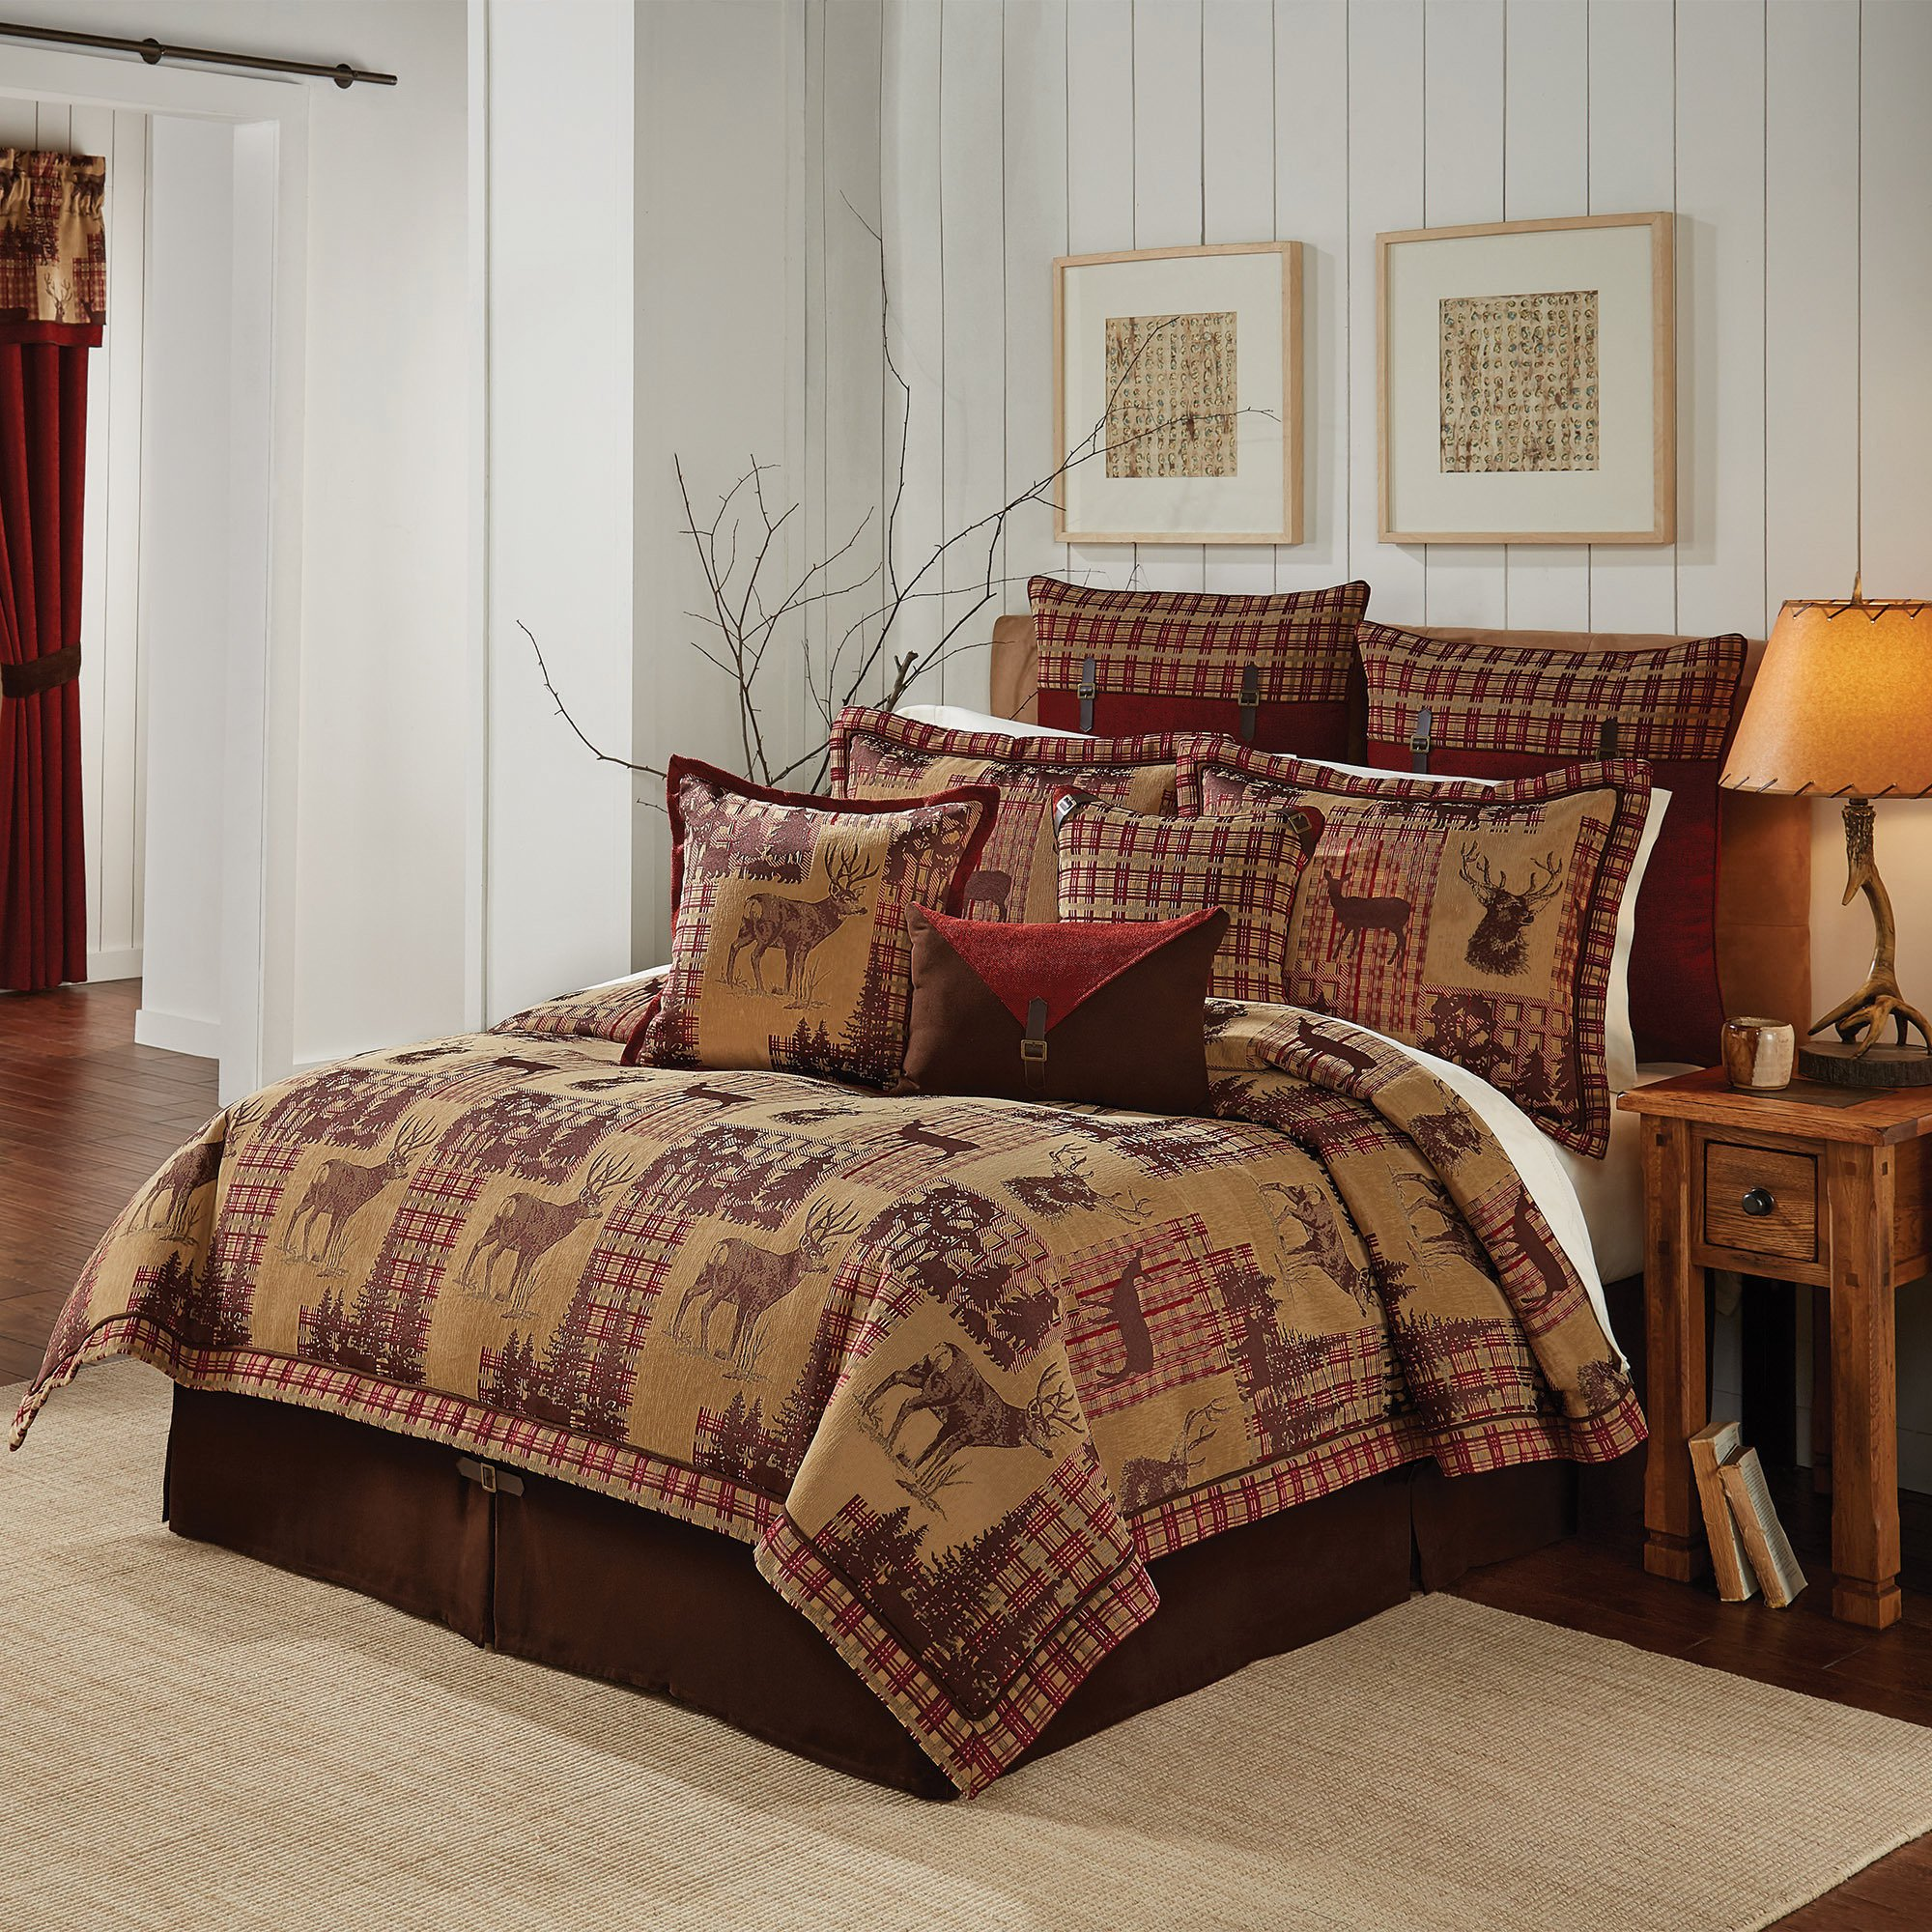 4 Piece Tan Brown Gold Red Cabin Themed Comforter King/Cal King Set, Hunting Lodge Bedding Deer Forest Woods Southwest Plaid Pattern Native American Rustic Animal Country, Jacquard by D&H (Image #1)